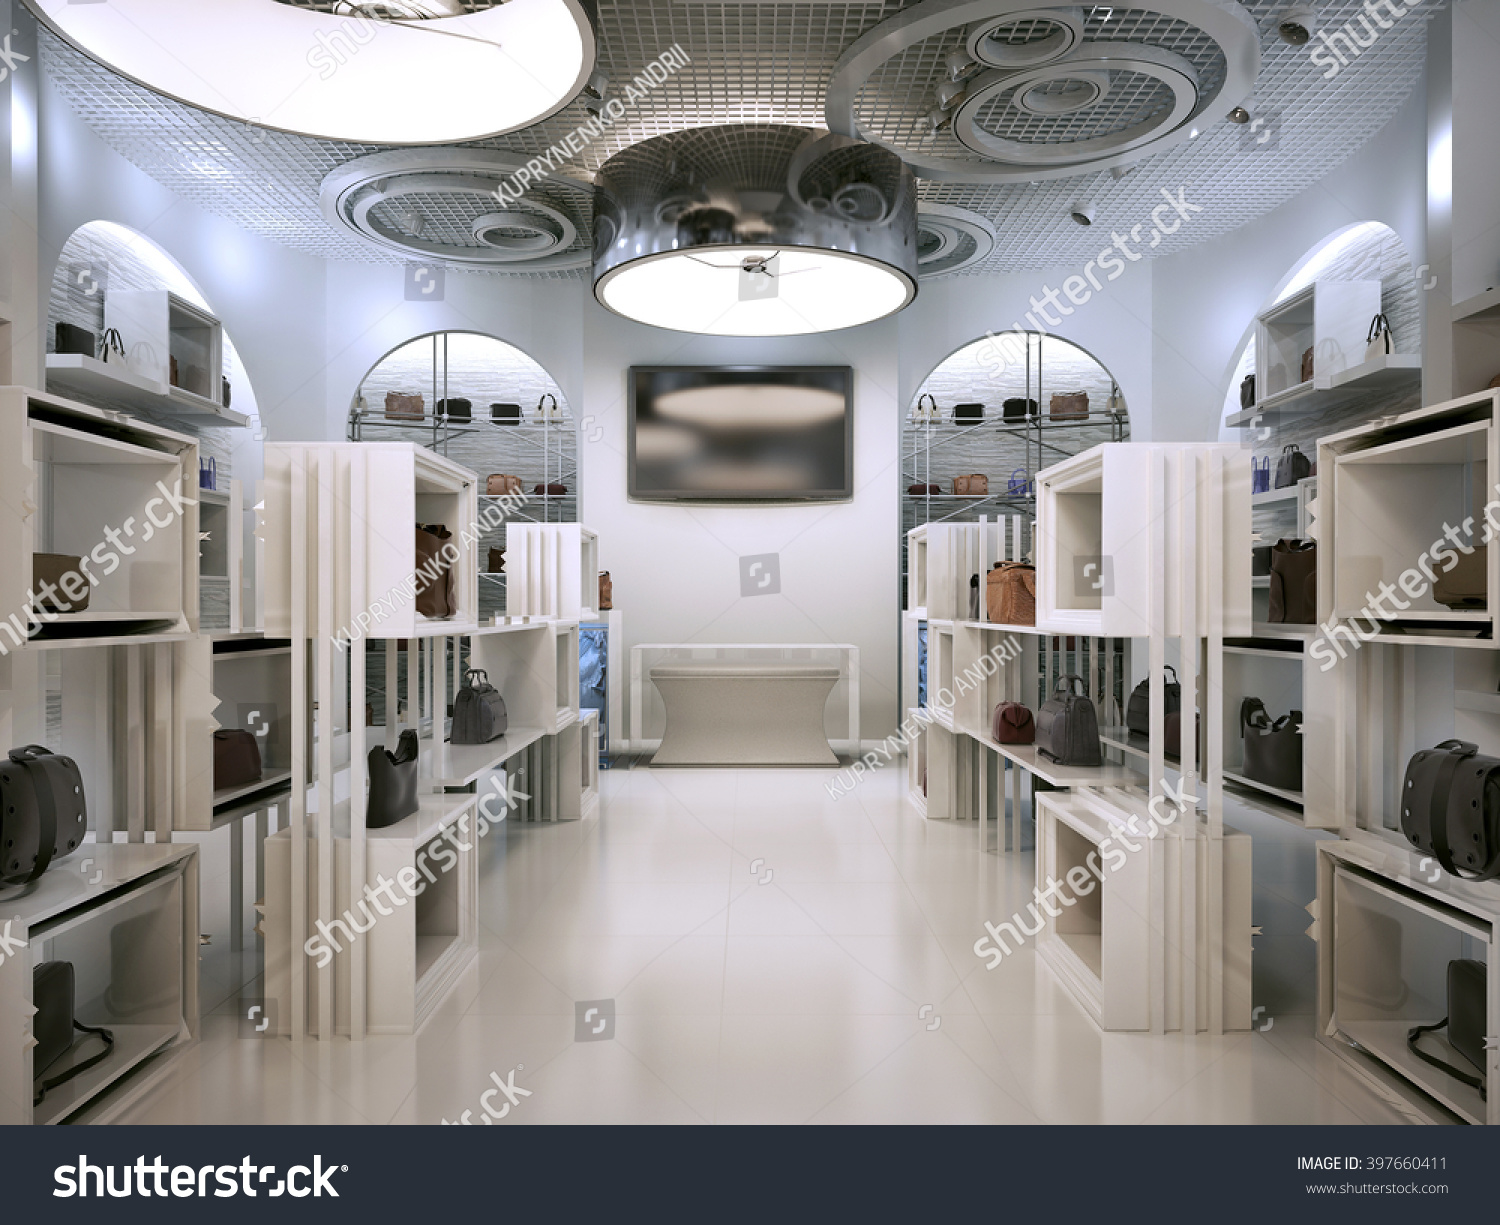 Luxury store interior design art deco stockillustration